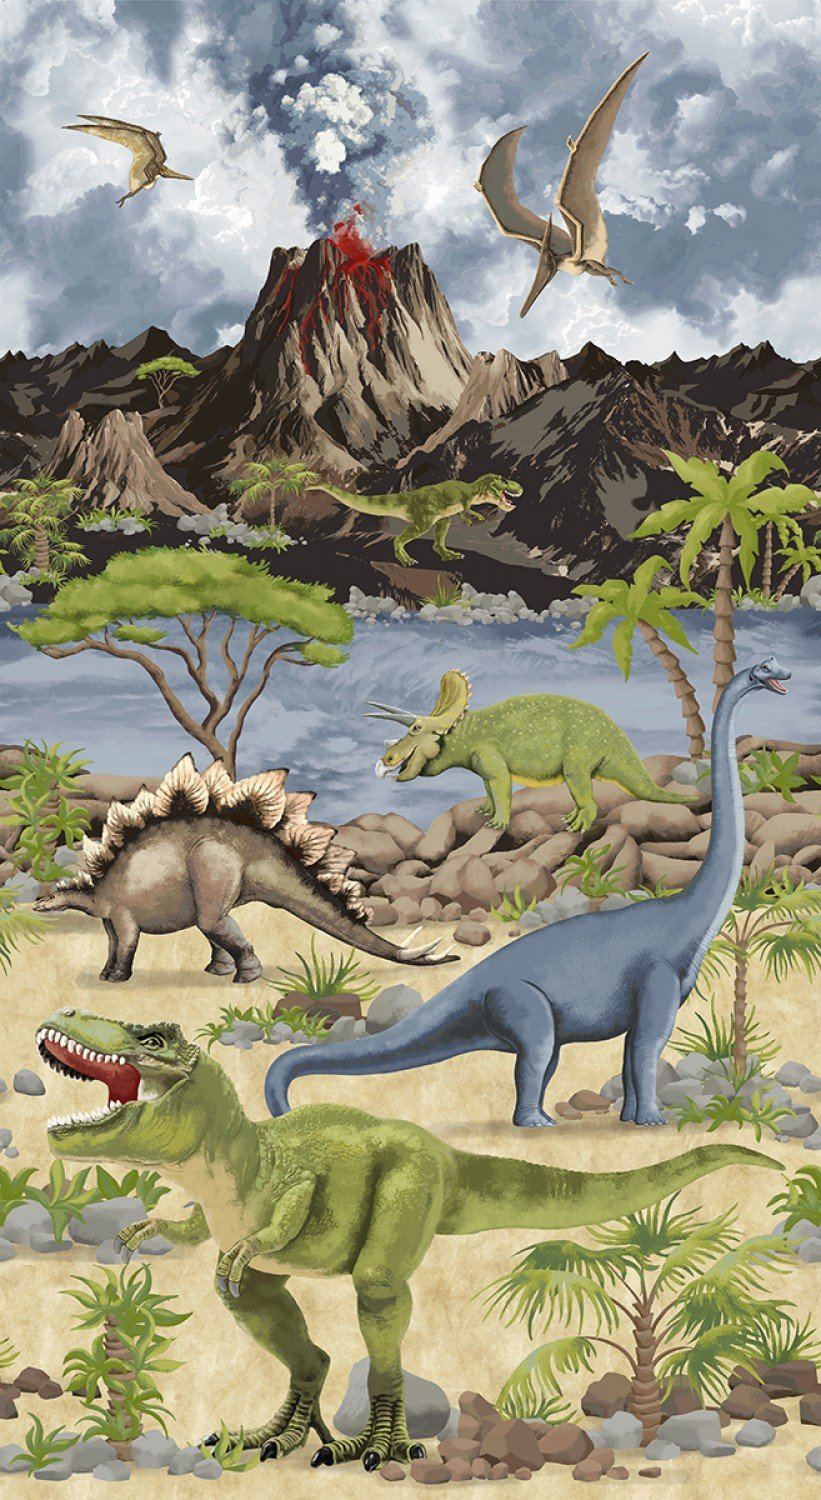 Stone Dino World by Timeless Treasures